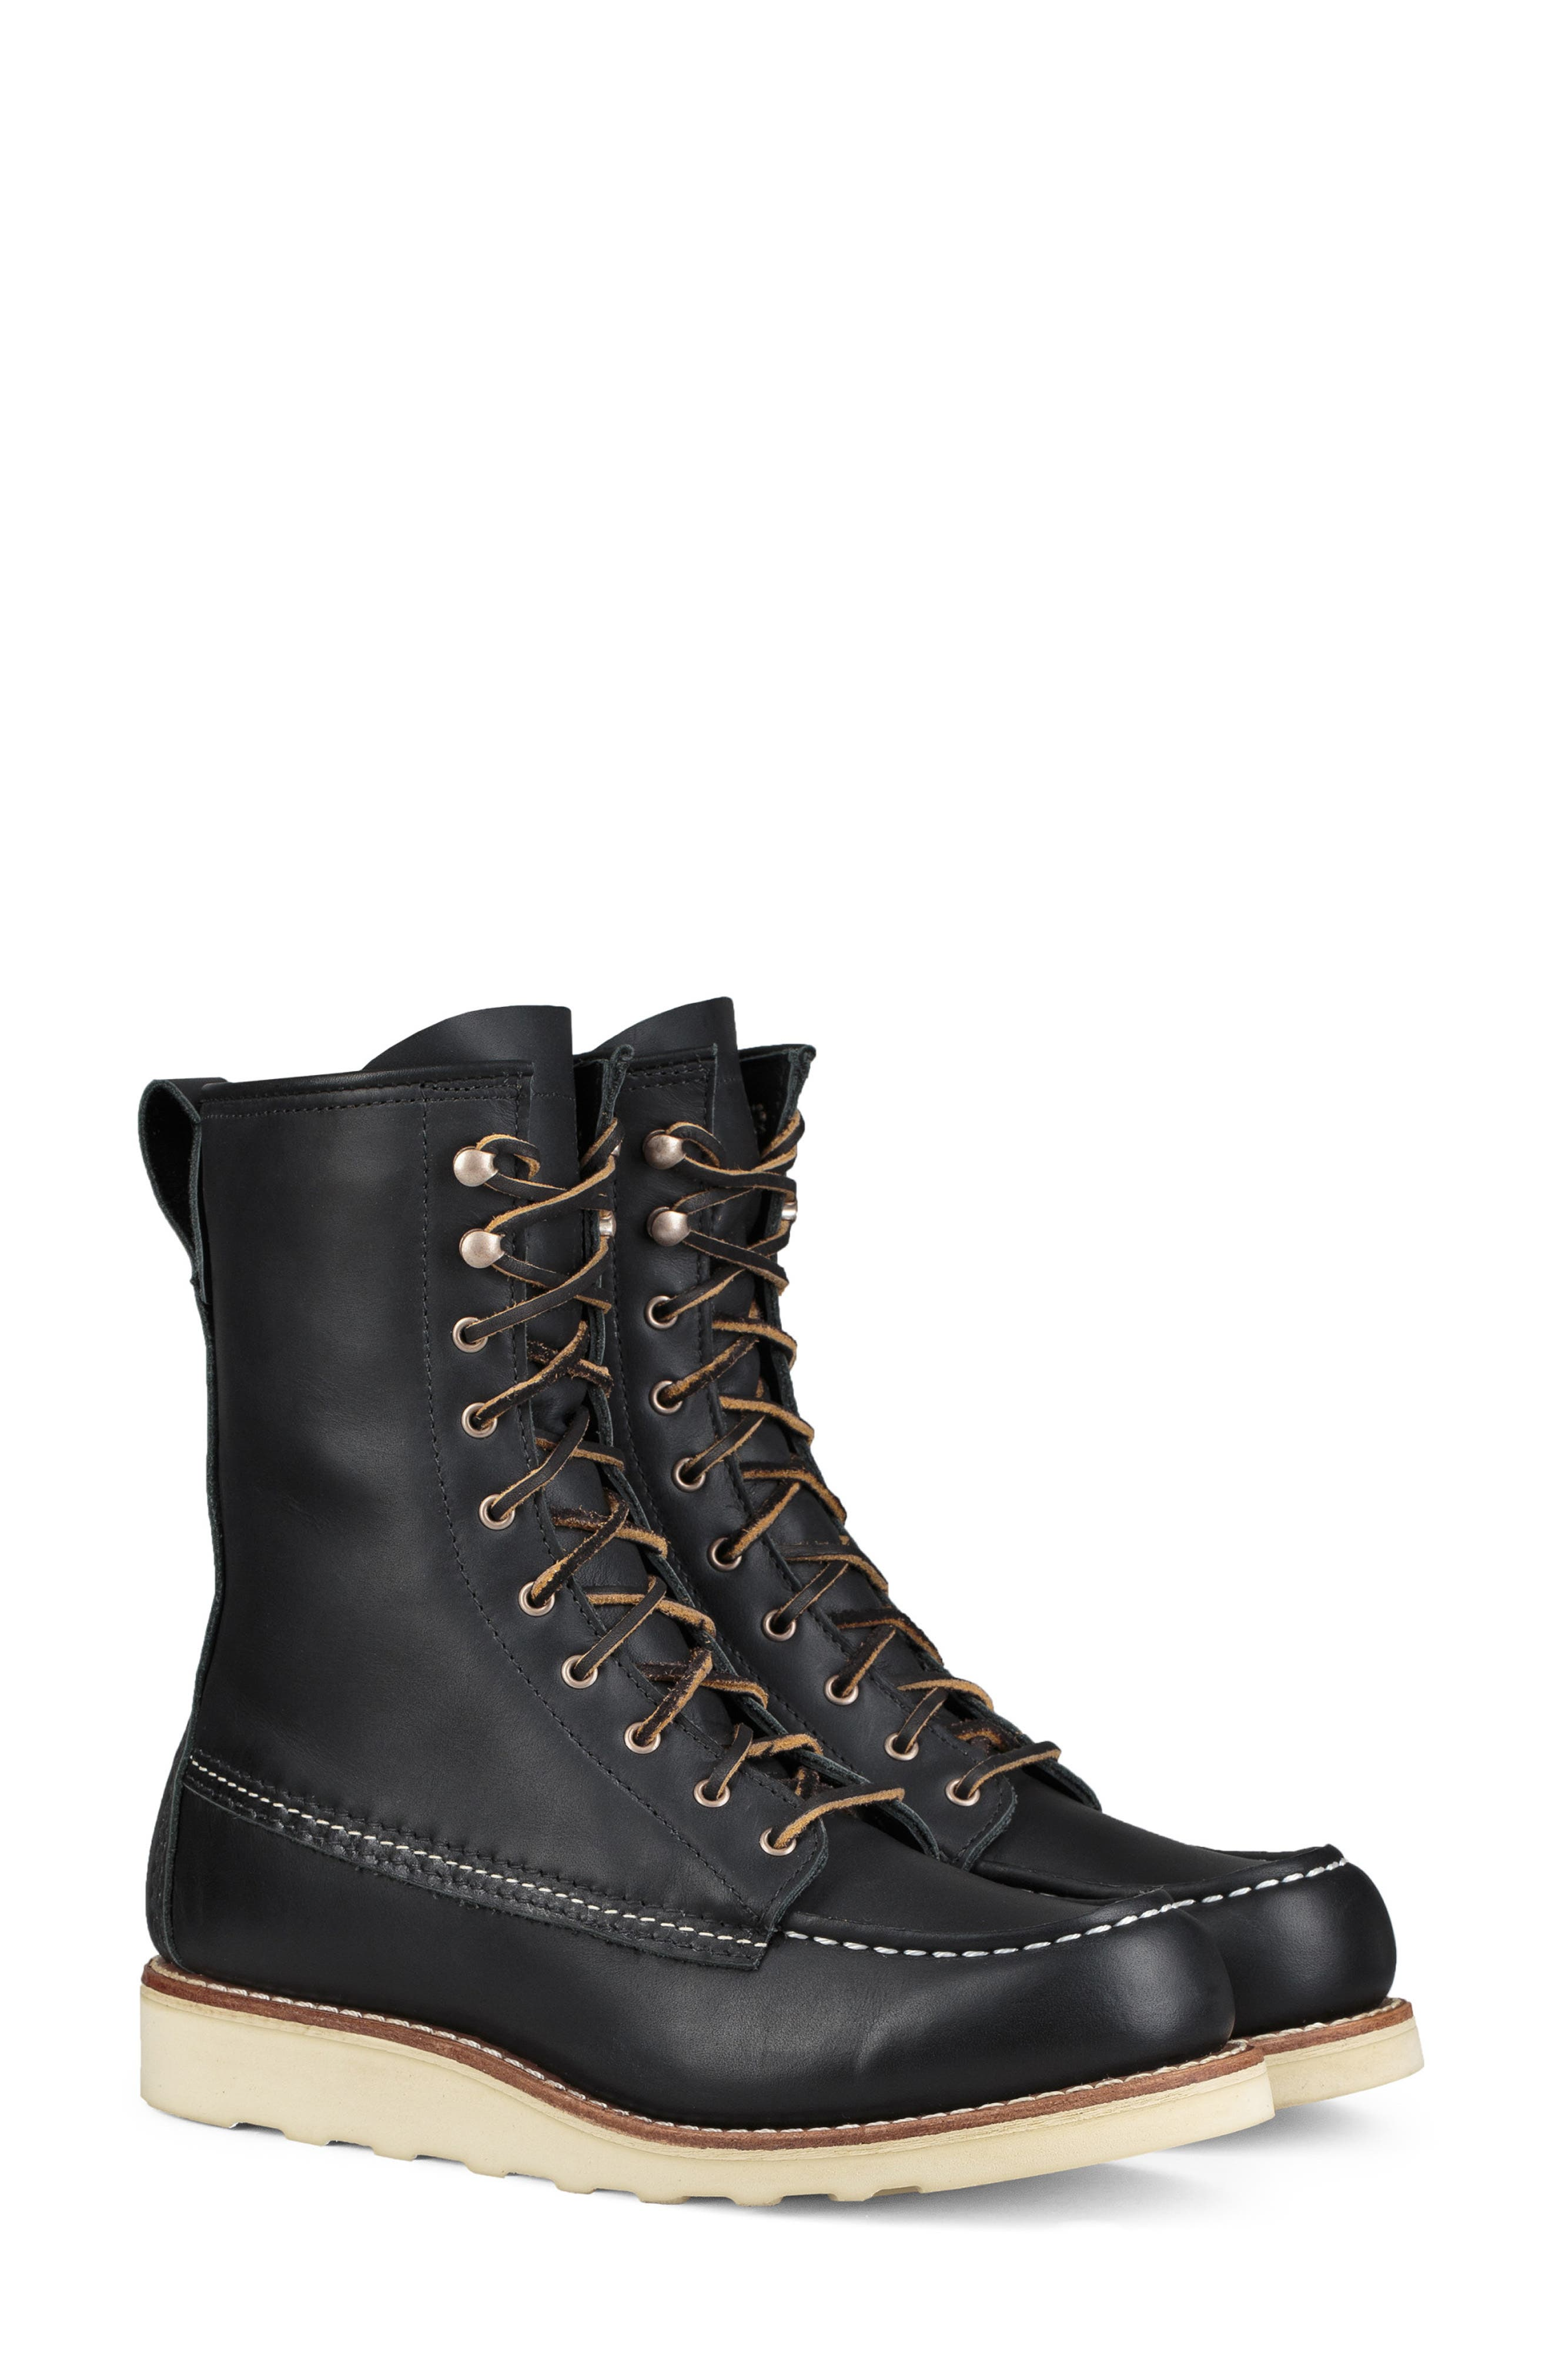 RED WING 8-Inch Moc Boot, Main, color, BLACK BOUNDARY LEATHER